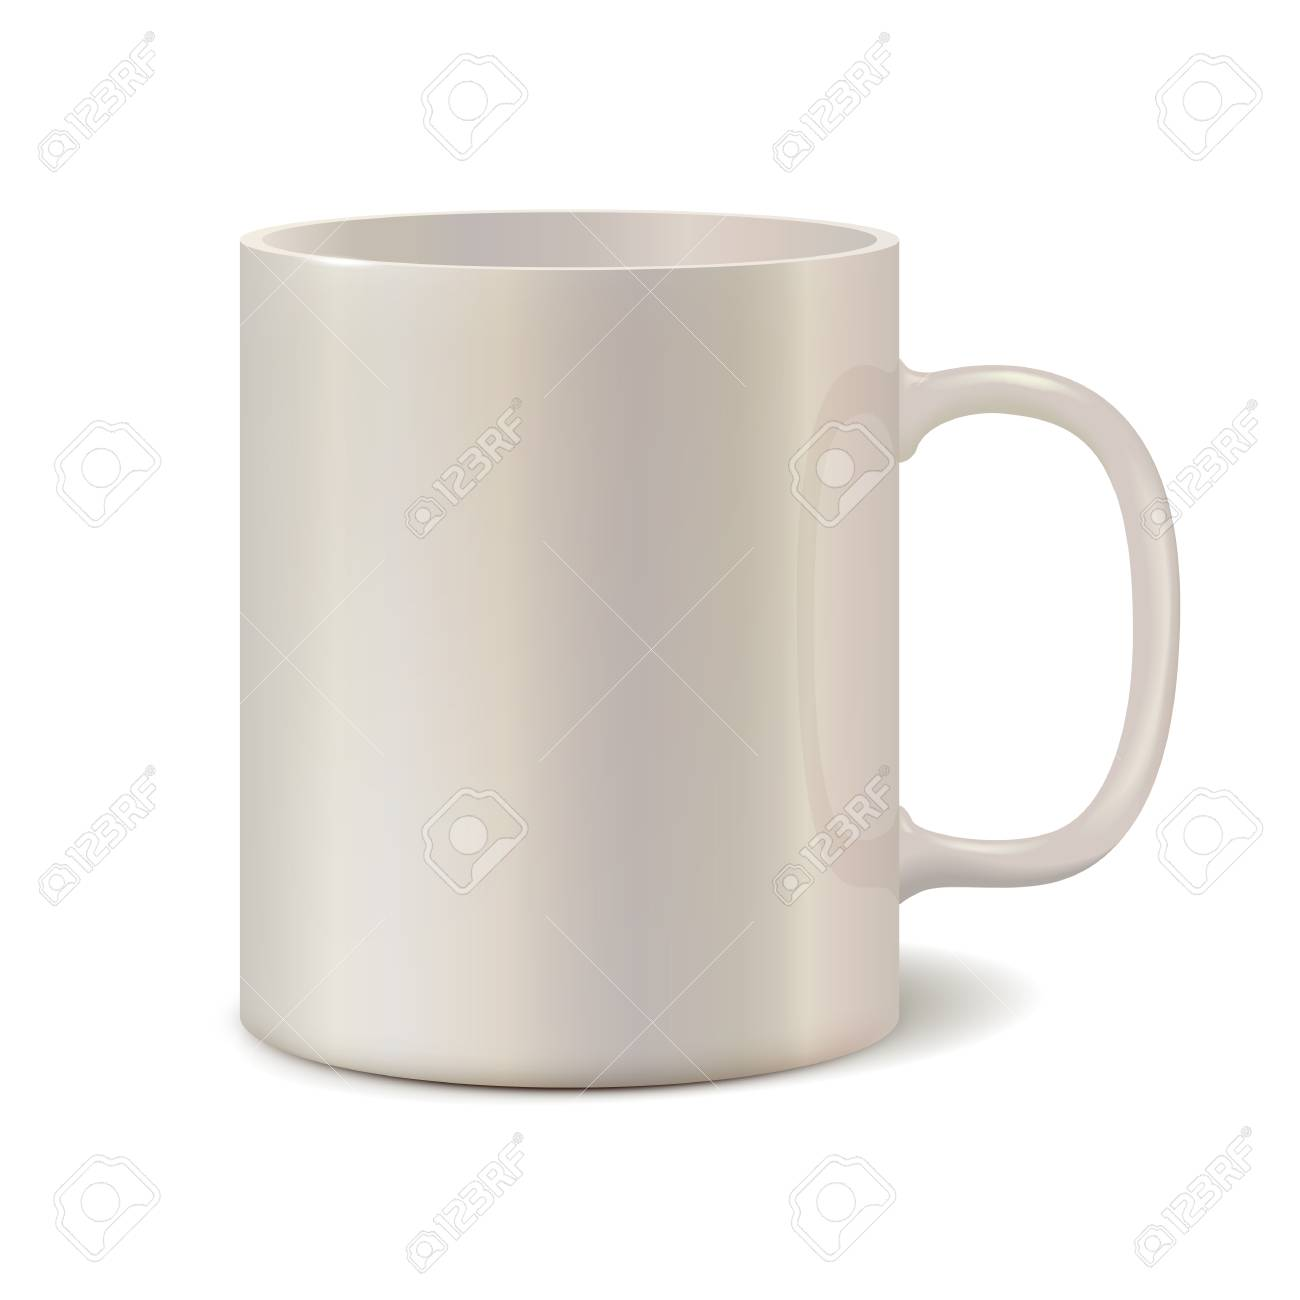 light pearl ceramic mug for printing corporate cup isolated royalty free cliparts vectors and stock illustration image 64659717 light pearl ceramic mug for printing corporate cup isolated